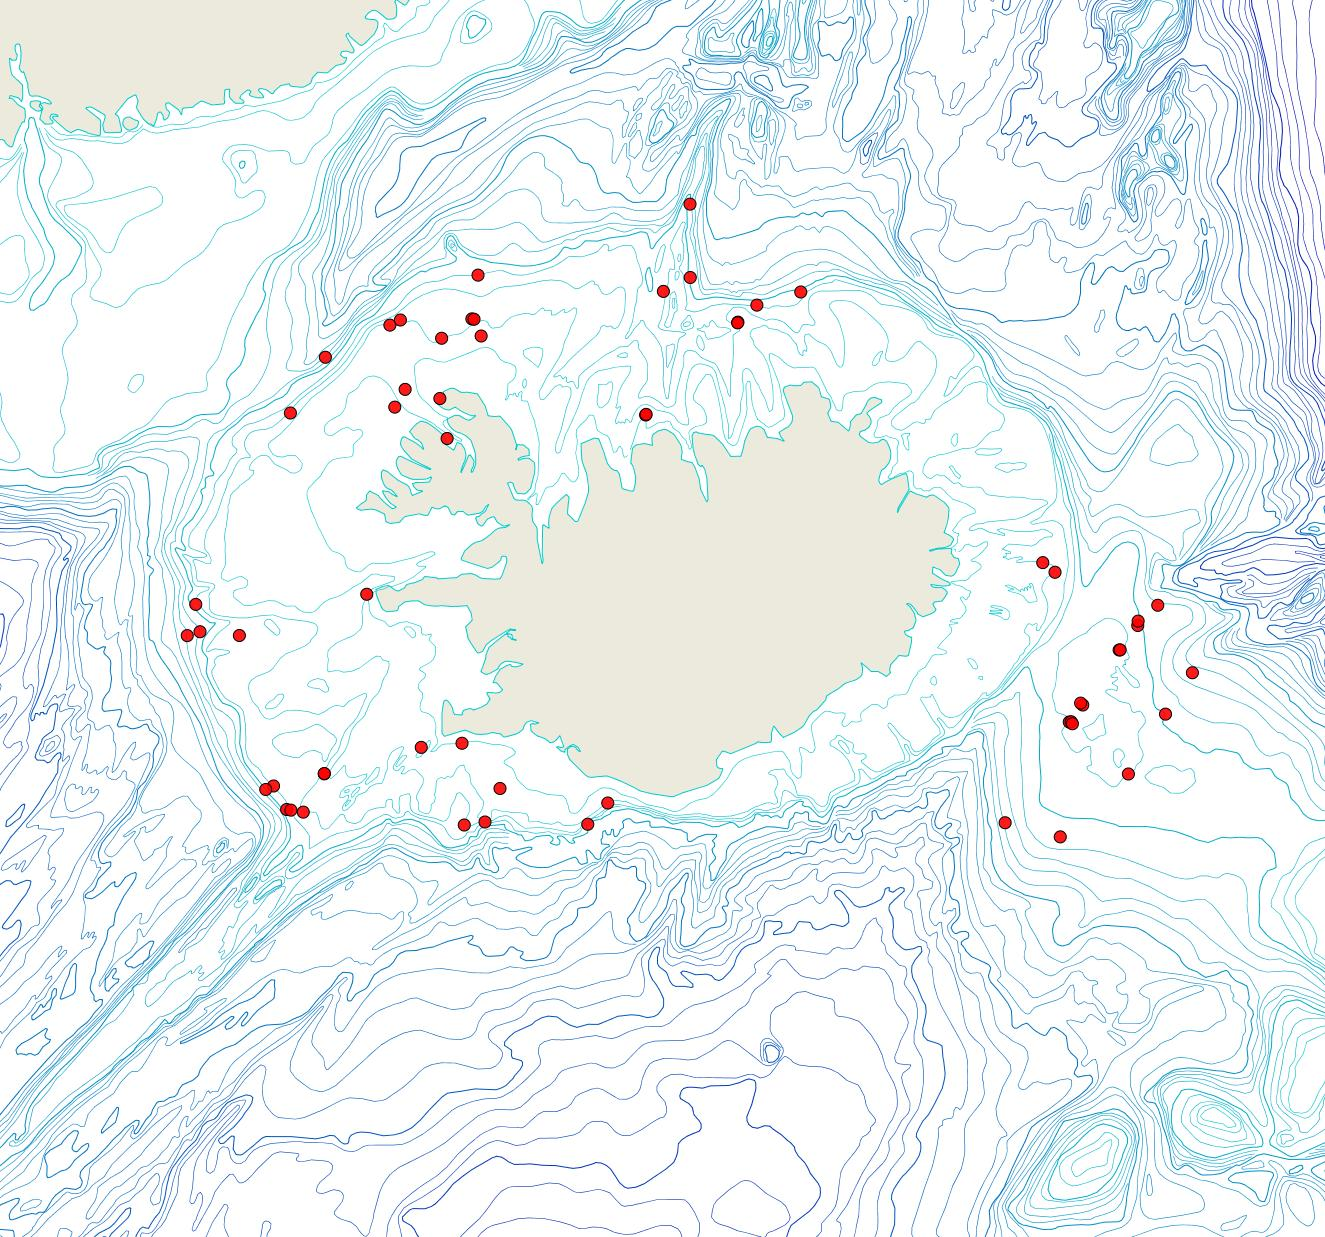 Útbreiðsla Disporella hispida(Bioice samples, red dots)